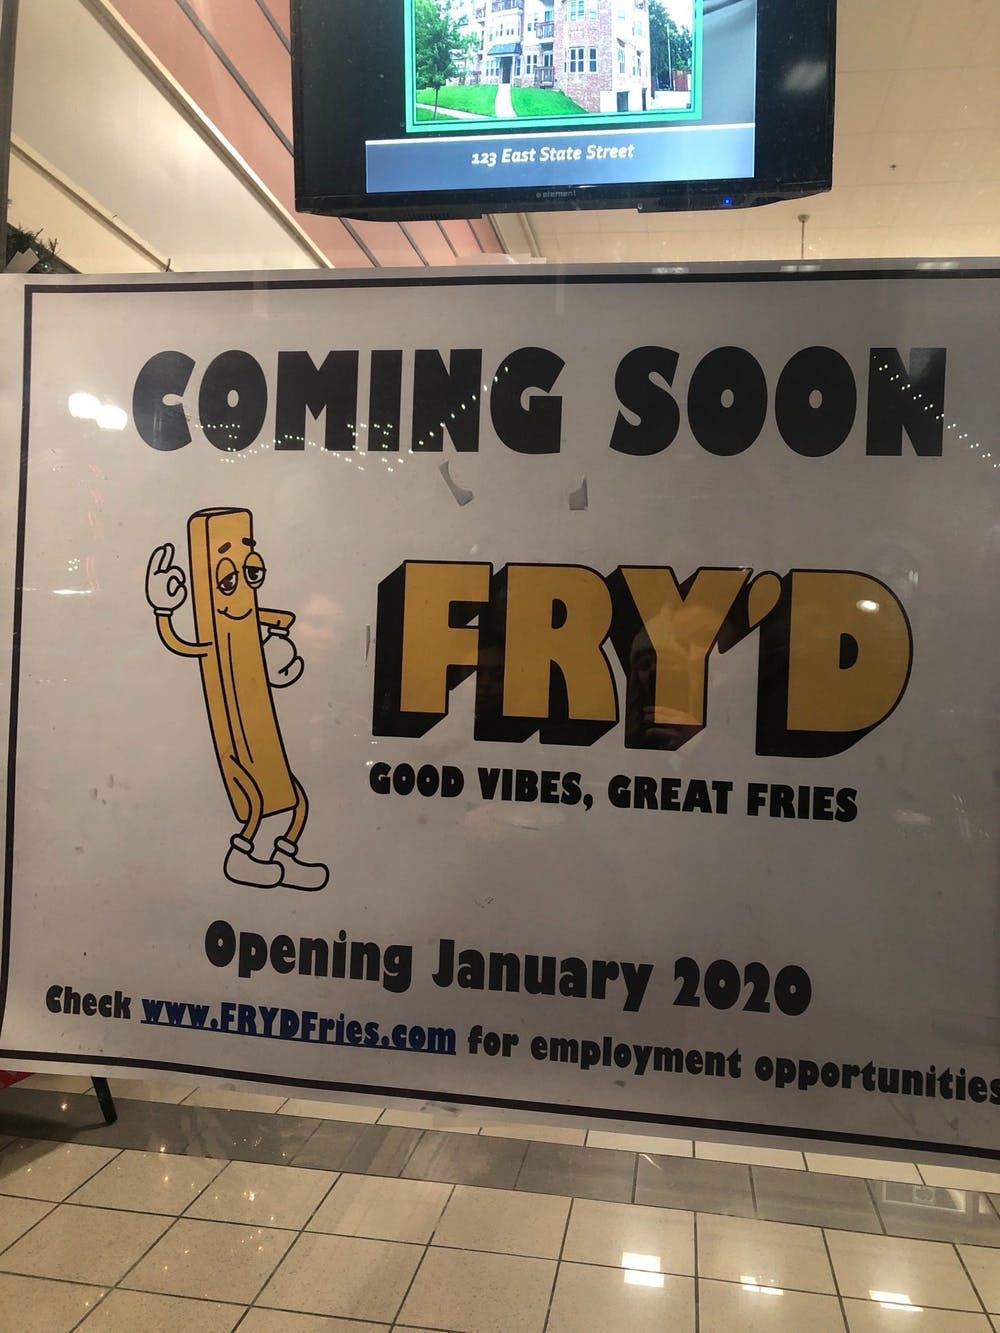 Fry'd Fries to open in Athens in January 2020